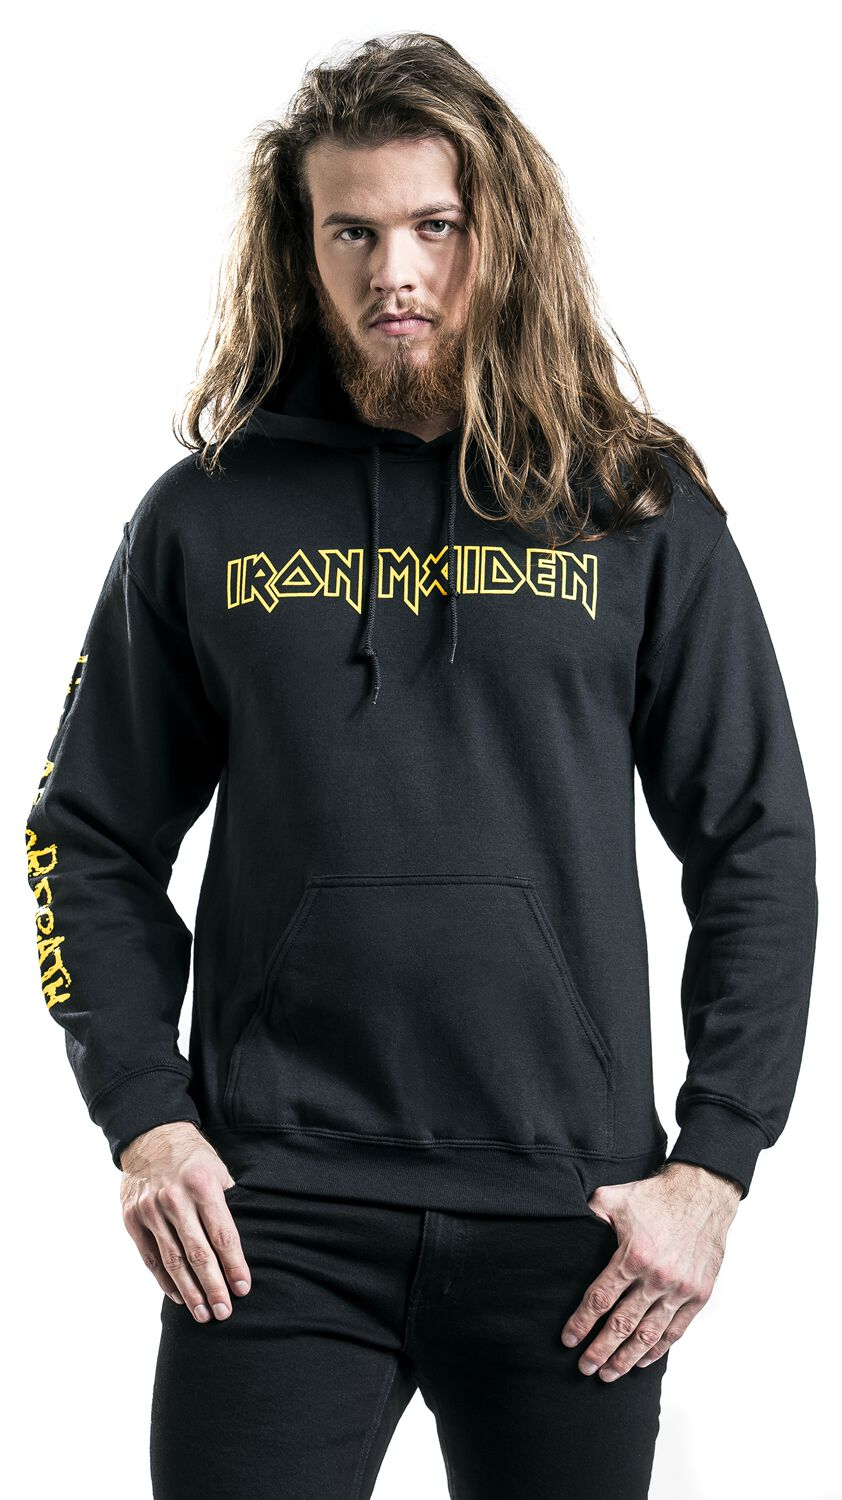 Live After Death Iron Maiden Hooded Sweater Emp One Piece Doctor Hoodie 1 Review